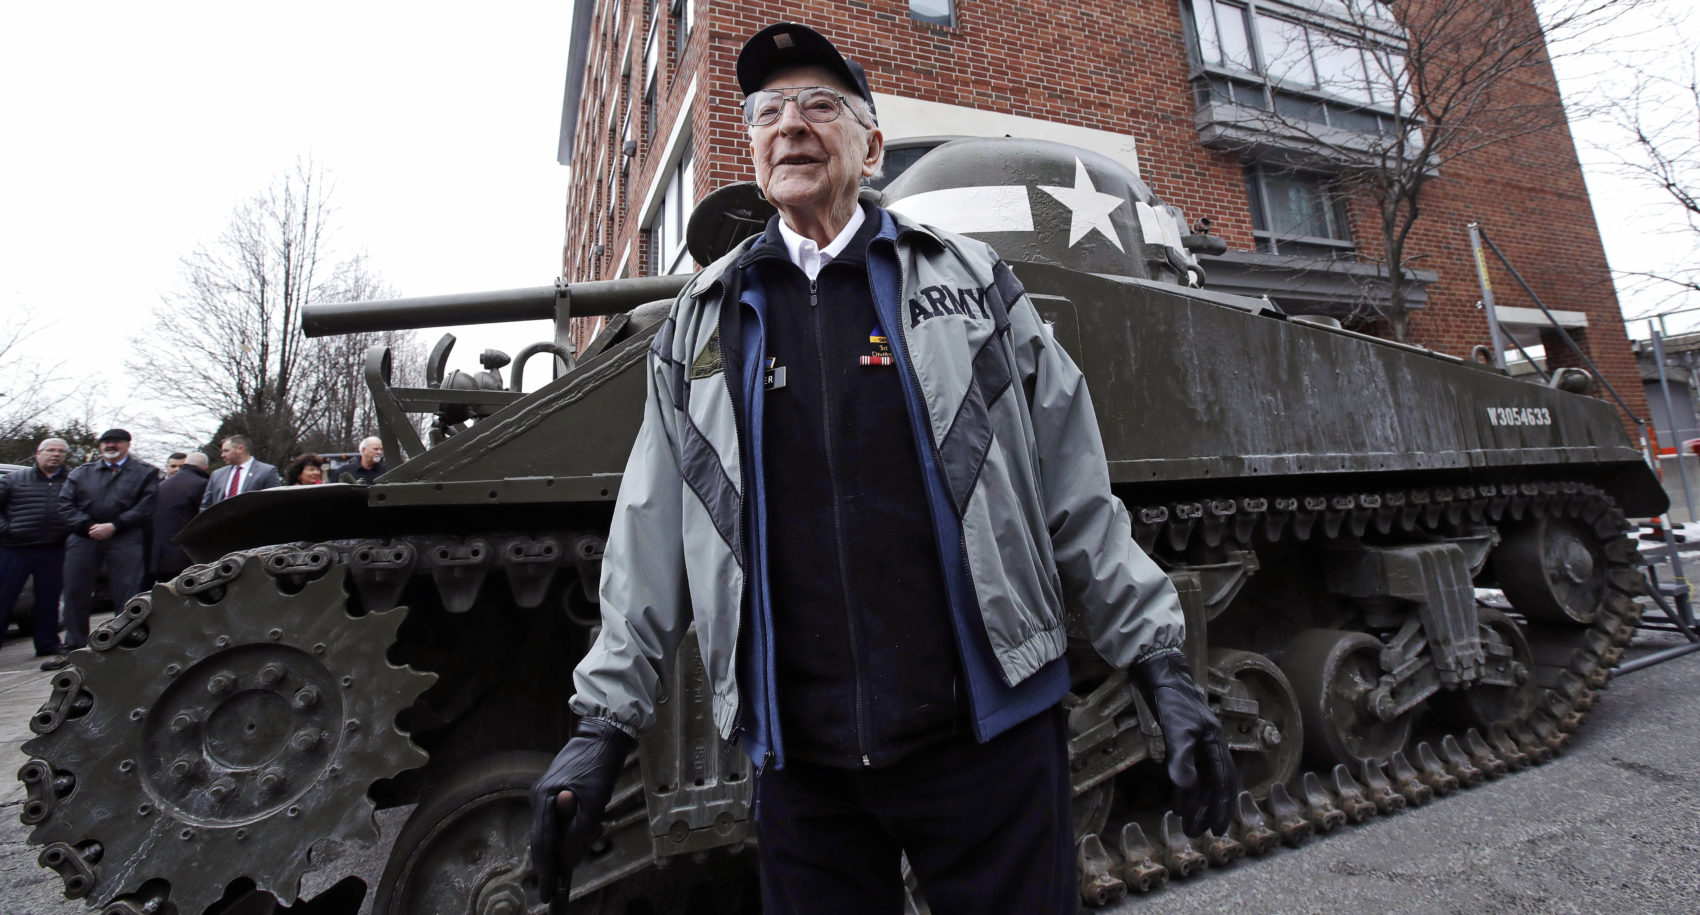 95-Year-Old WWII Veteran Gets Surprise Visit From An 'Old